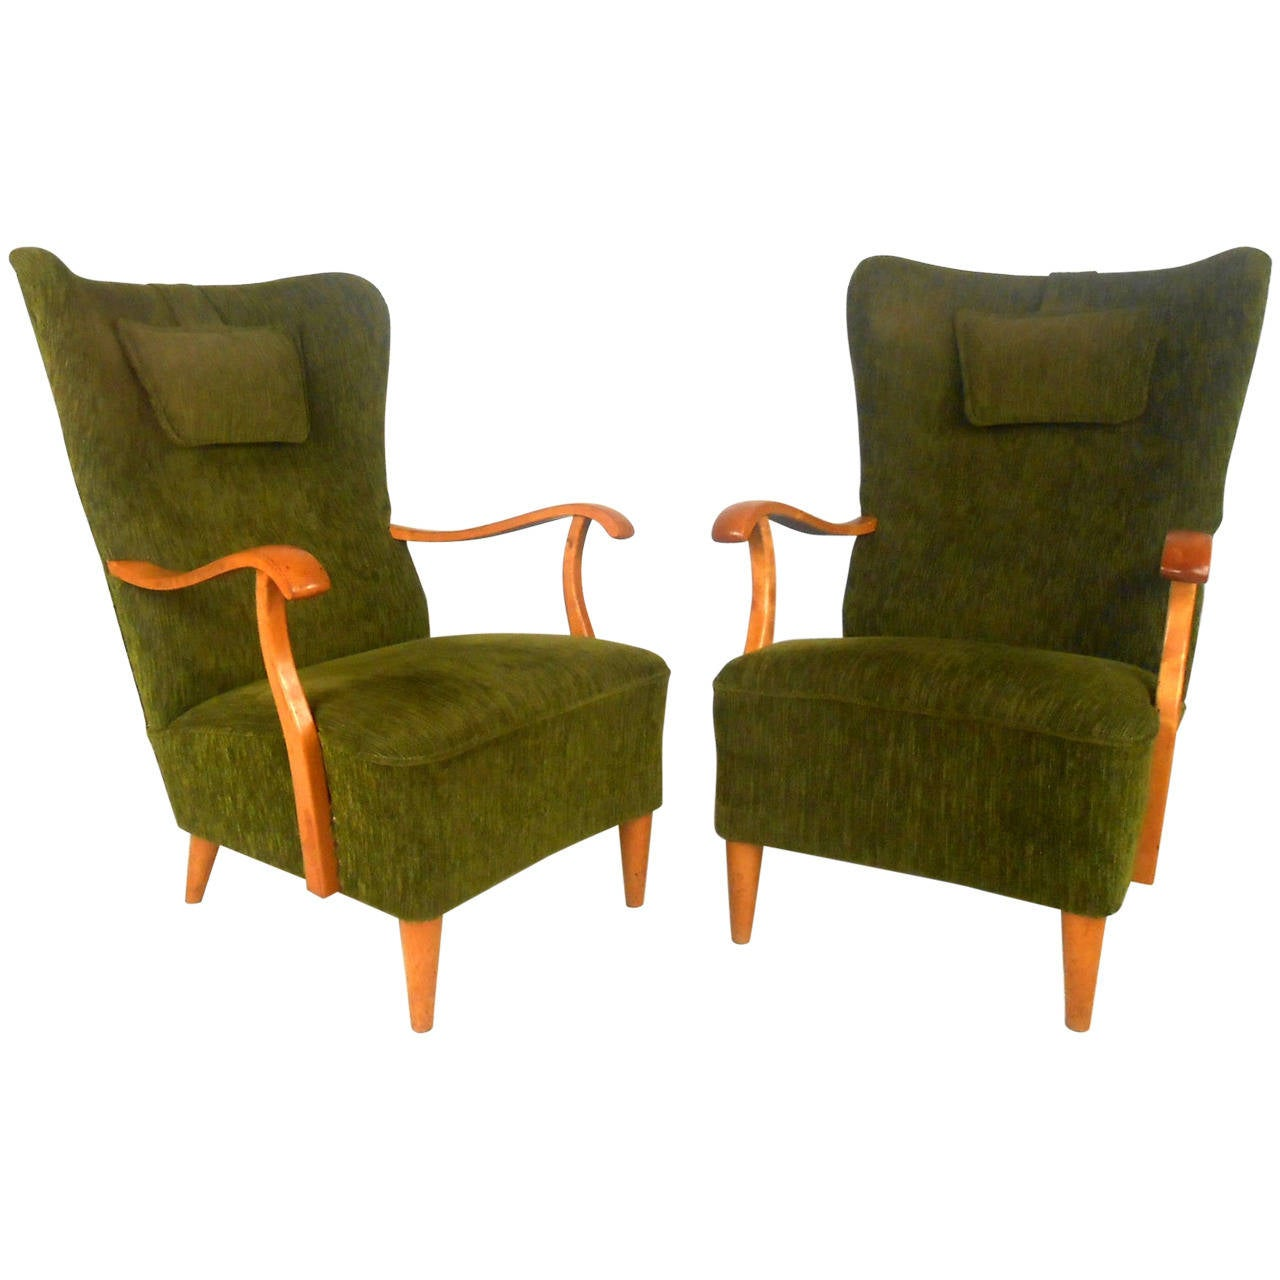 Unique Armchairs Pair Of Unique Mid Century Modern High Back Lounge Chairs